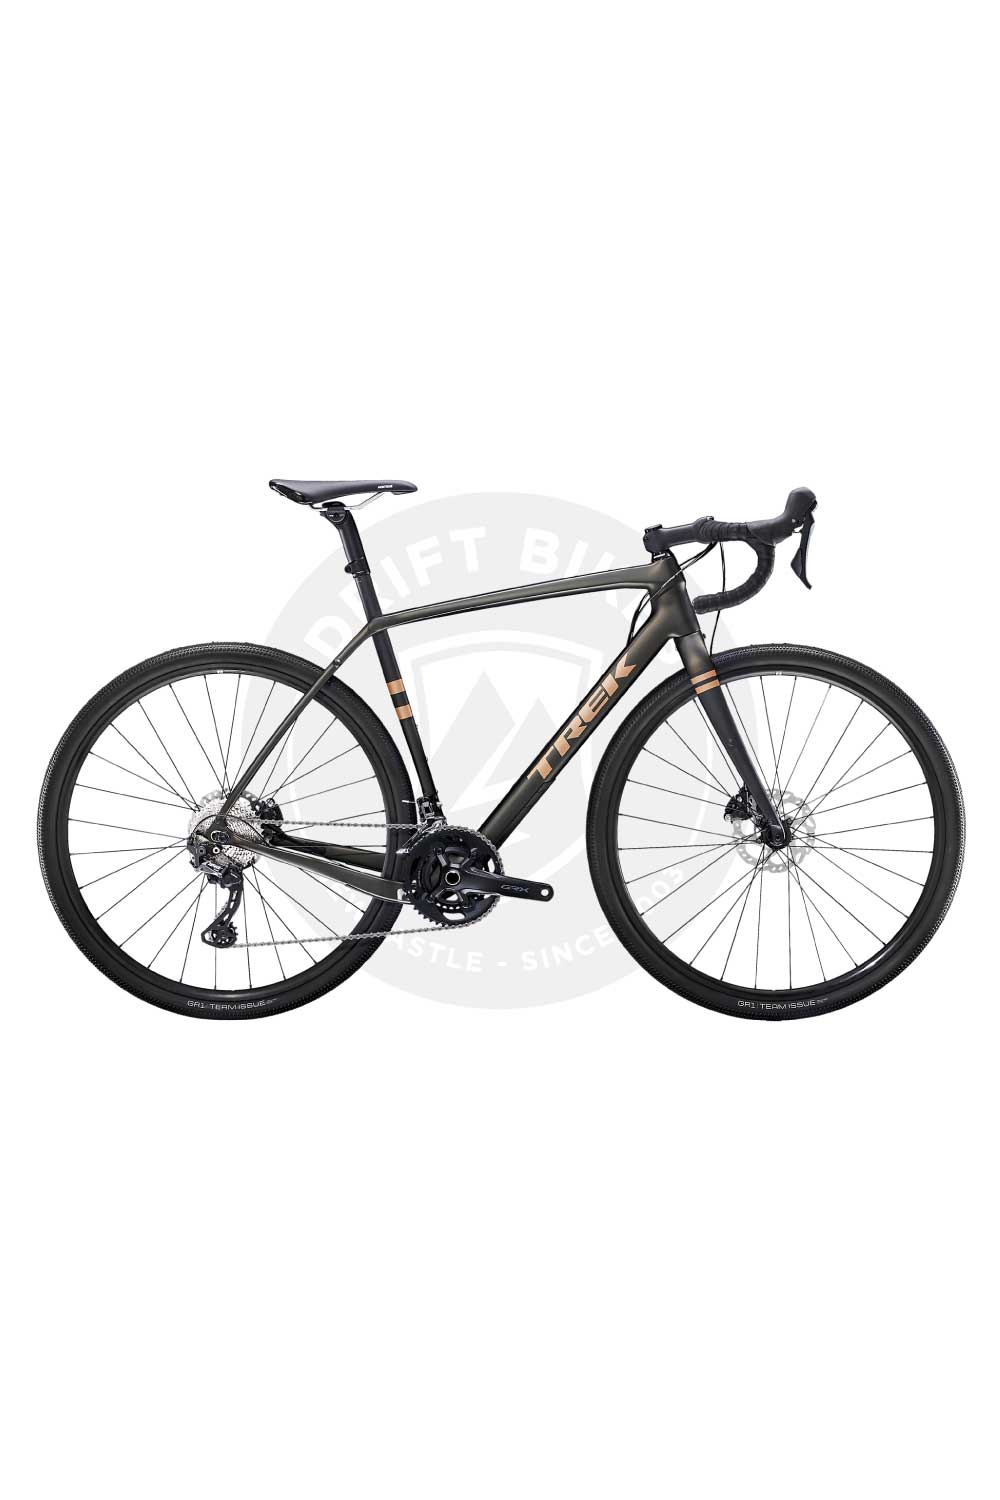 TREK 2021 Checkpoint SL 5 Road Adventure Bike